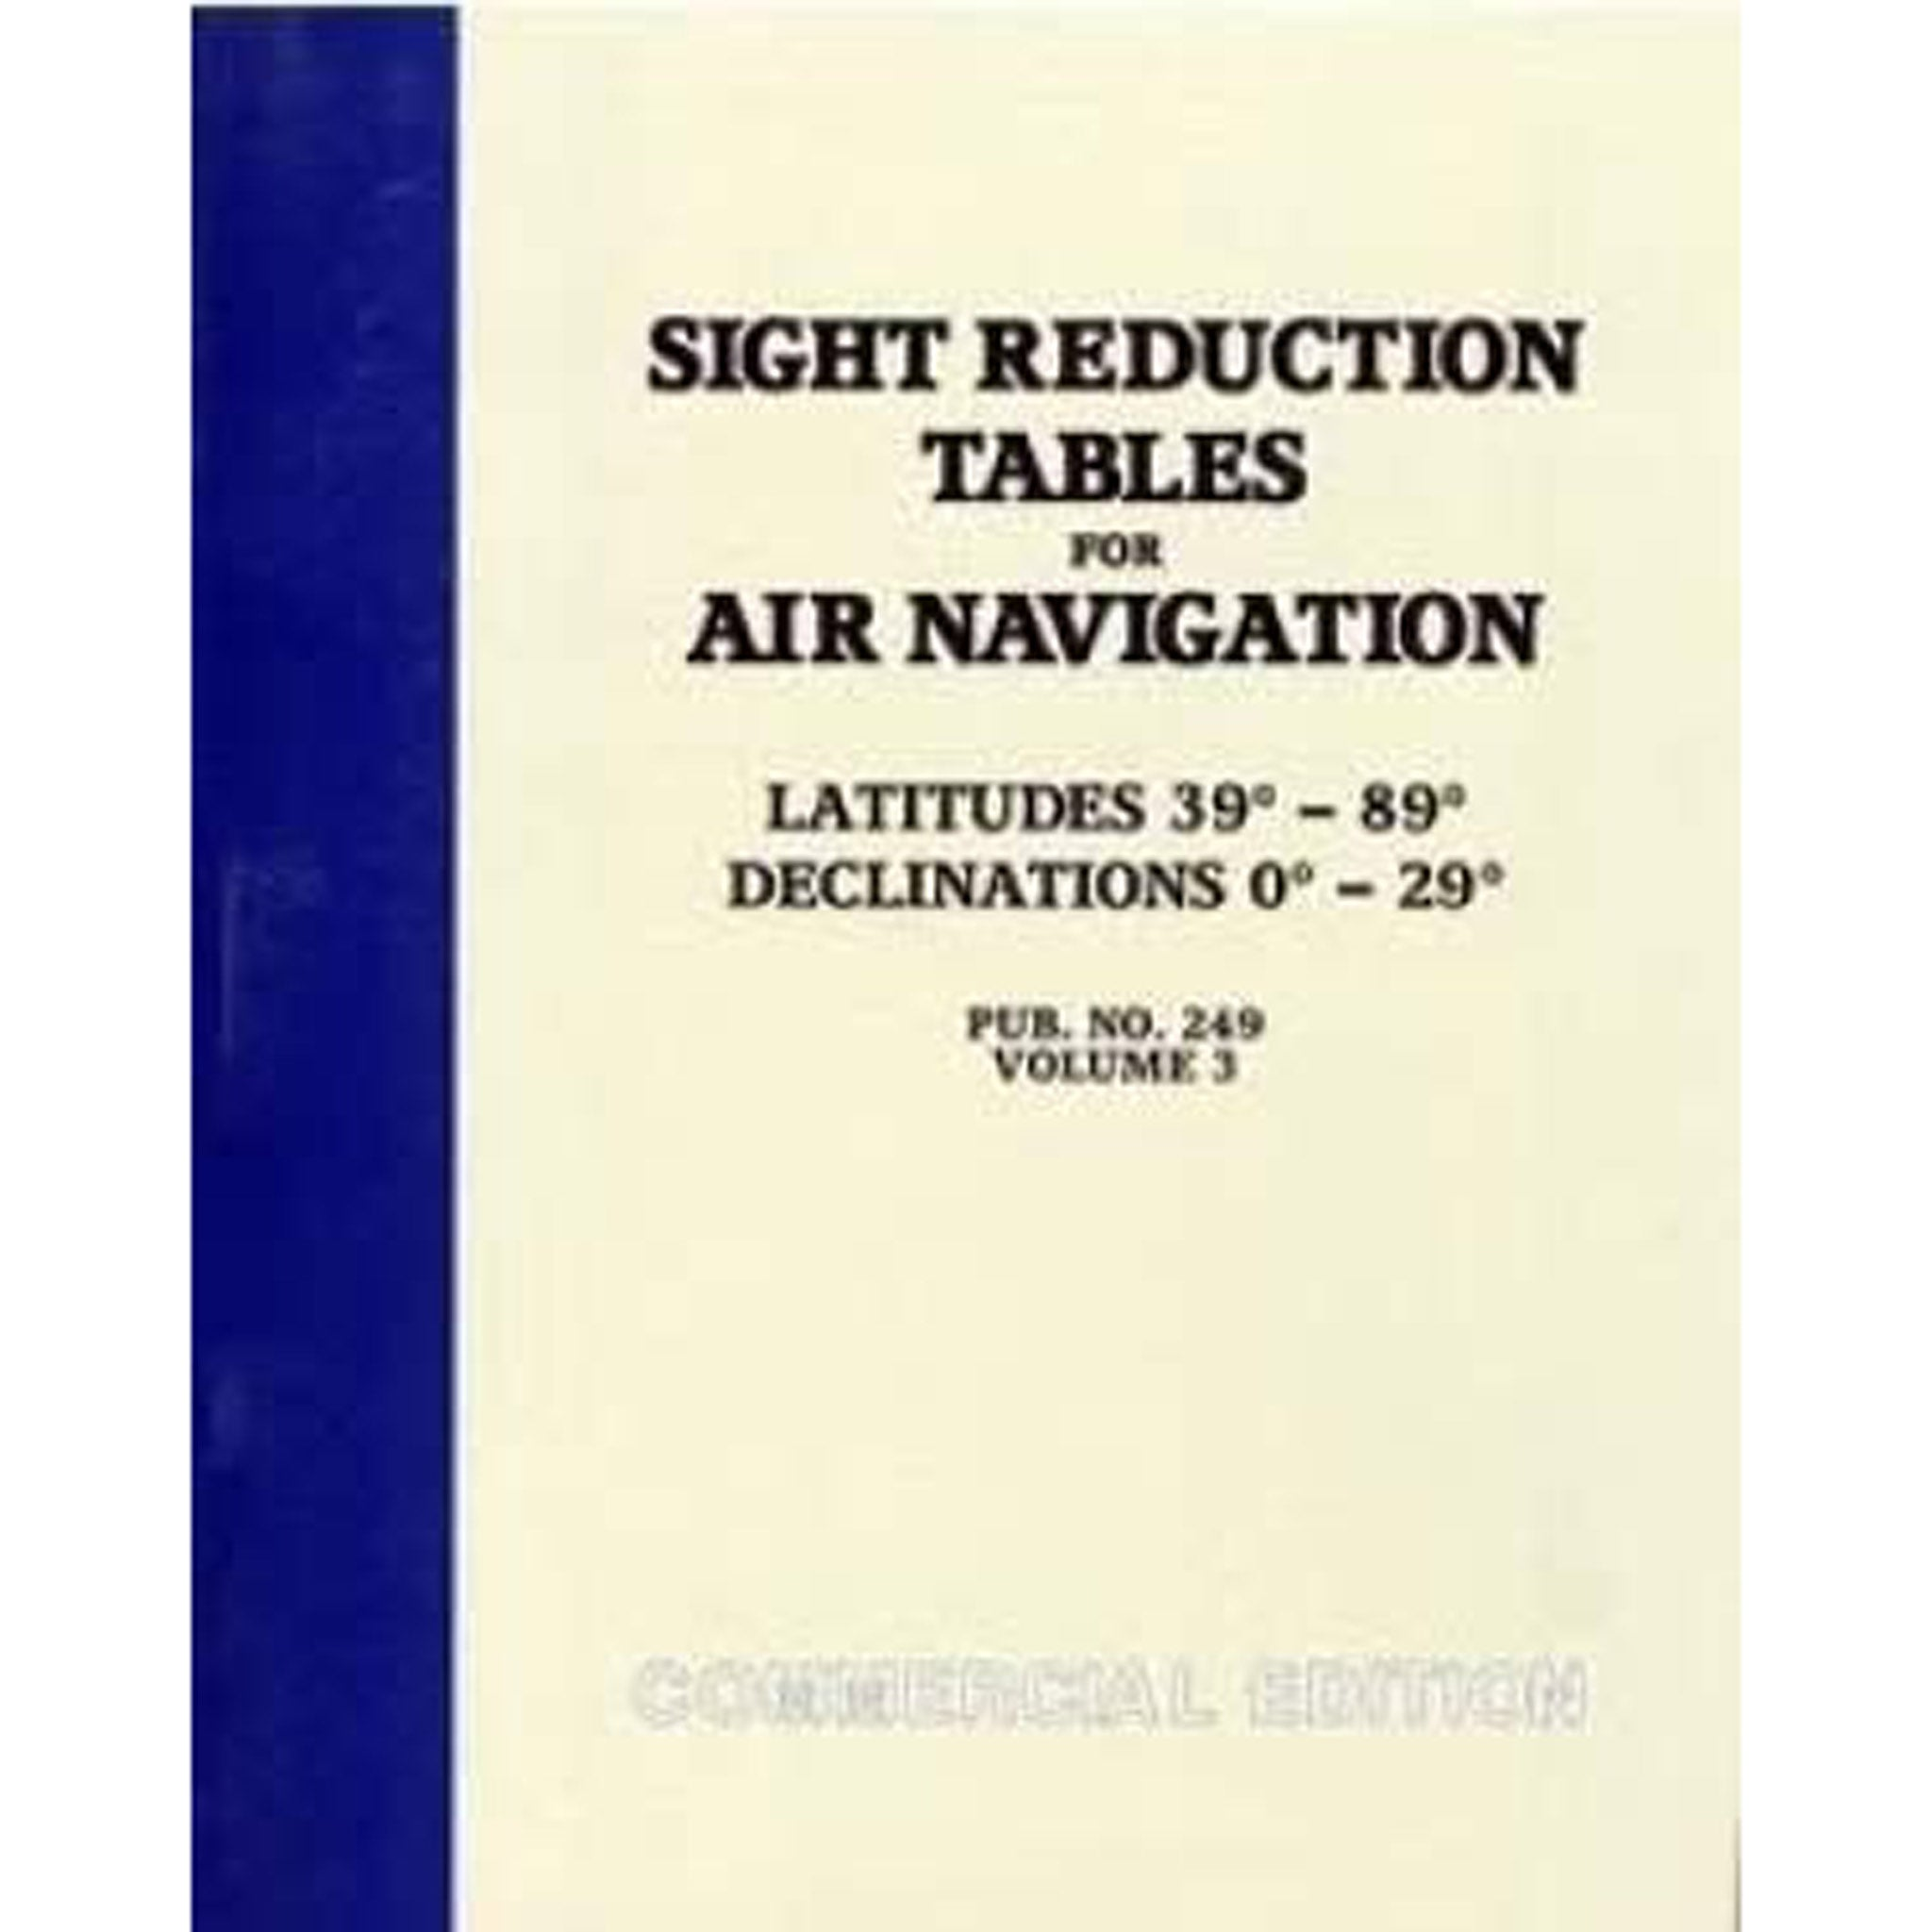 Sight Reduction Tables for Air Navigation Vol 3 (Latitudes 39-89)